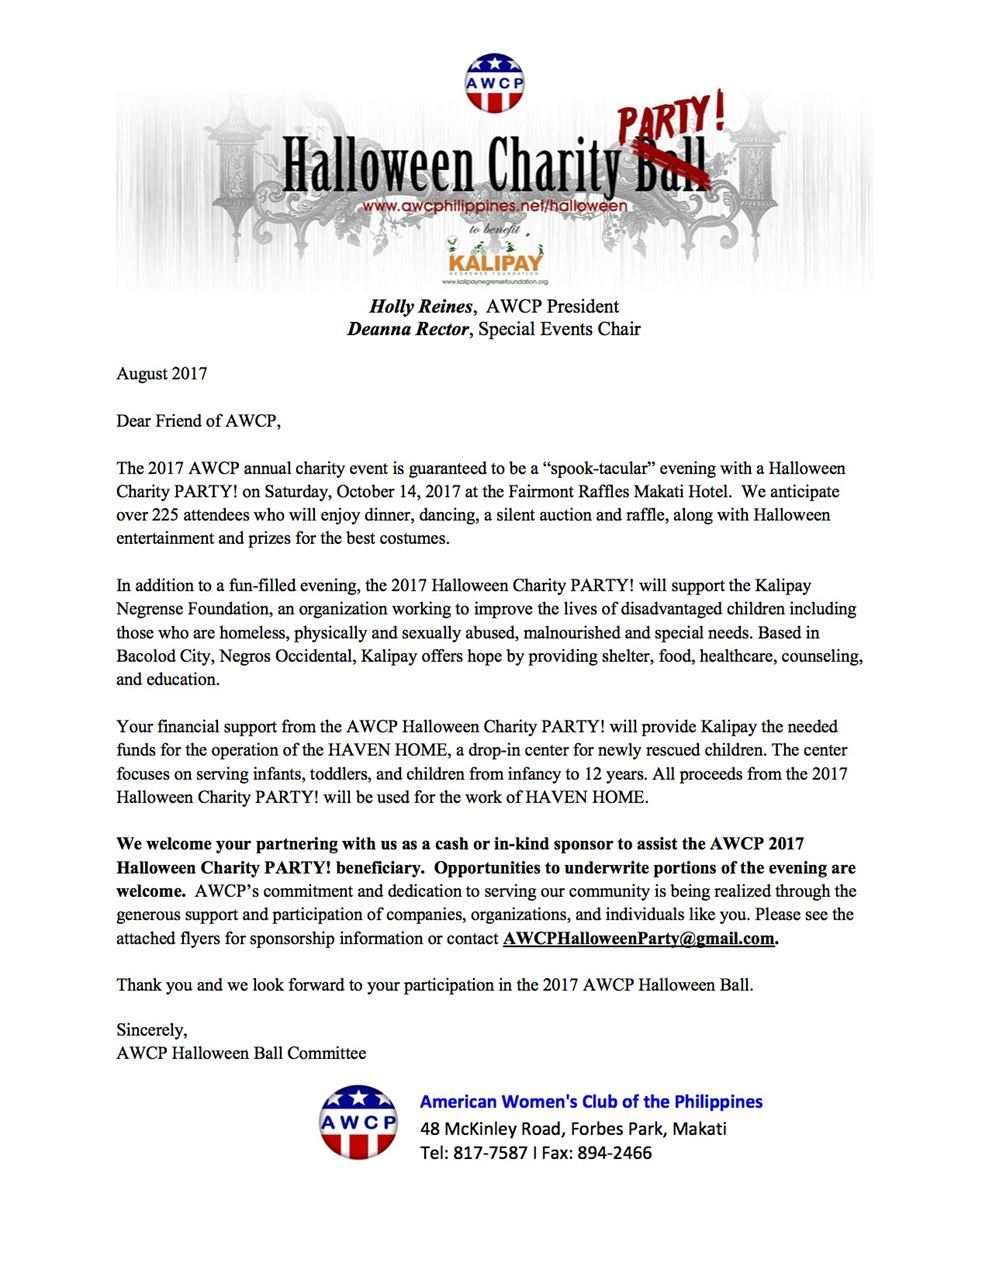 American womens club of the philippines letter to sponsor home activities halloween charity party letter to sponsor thecheapjerseys Images